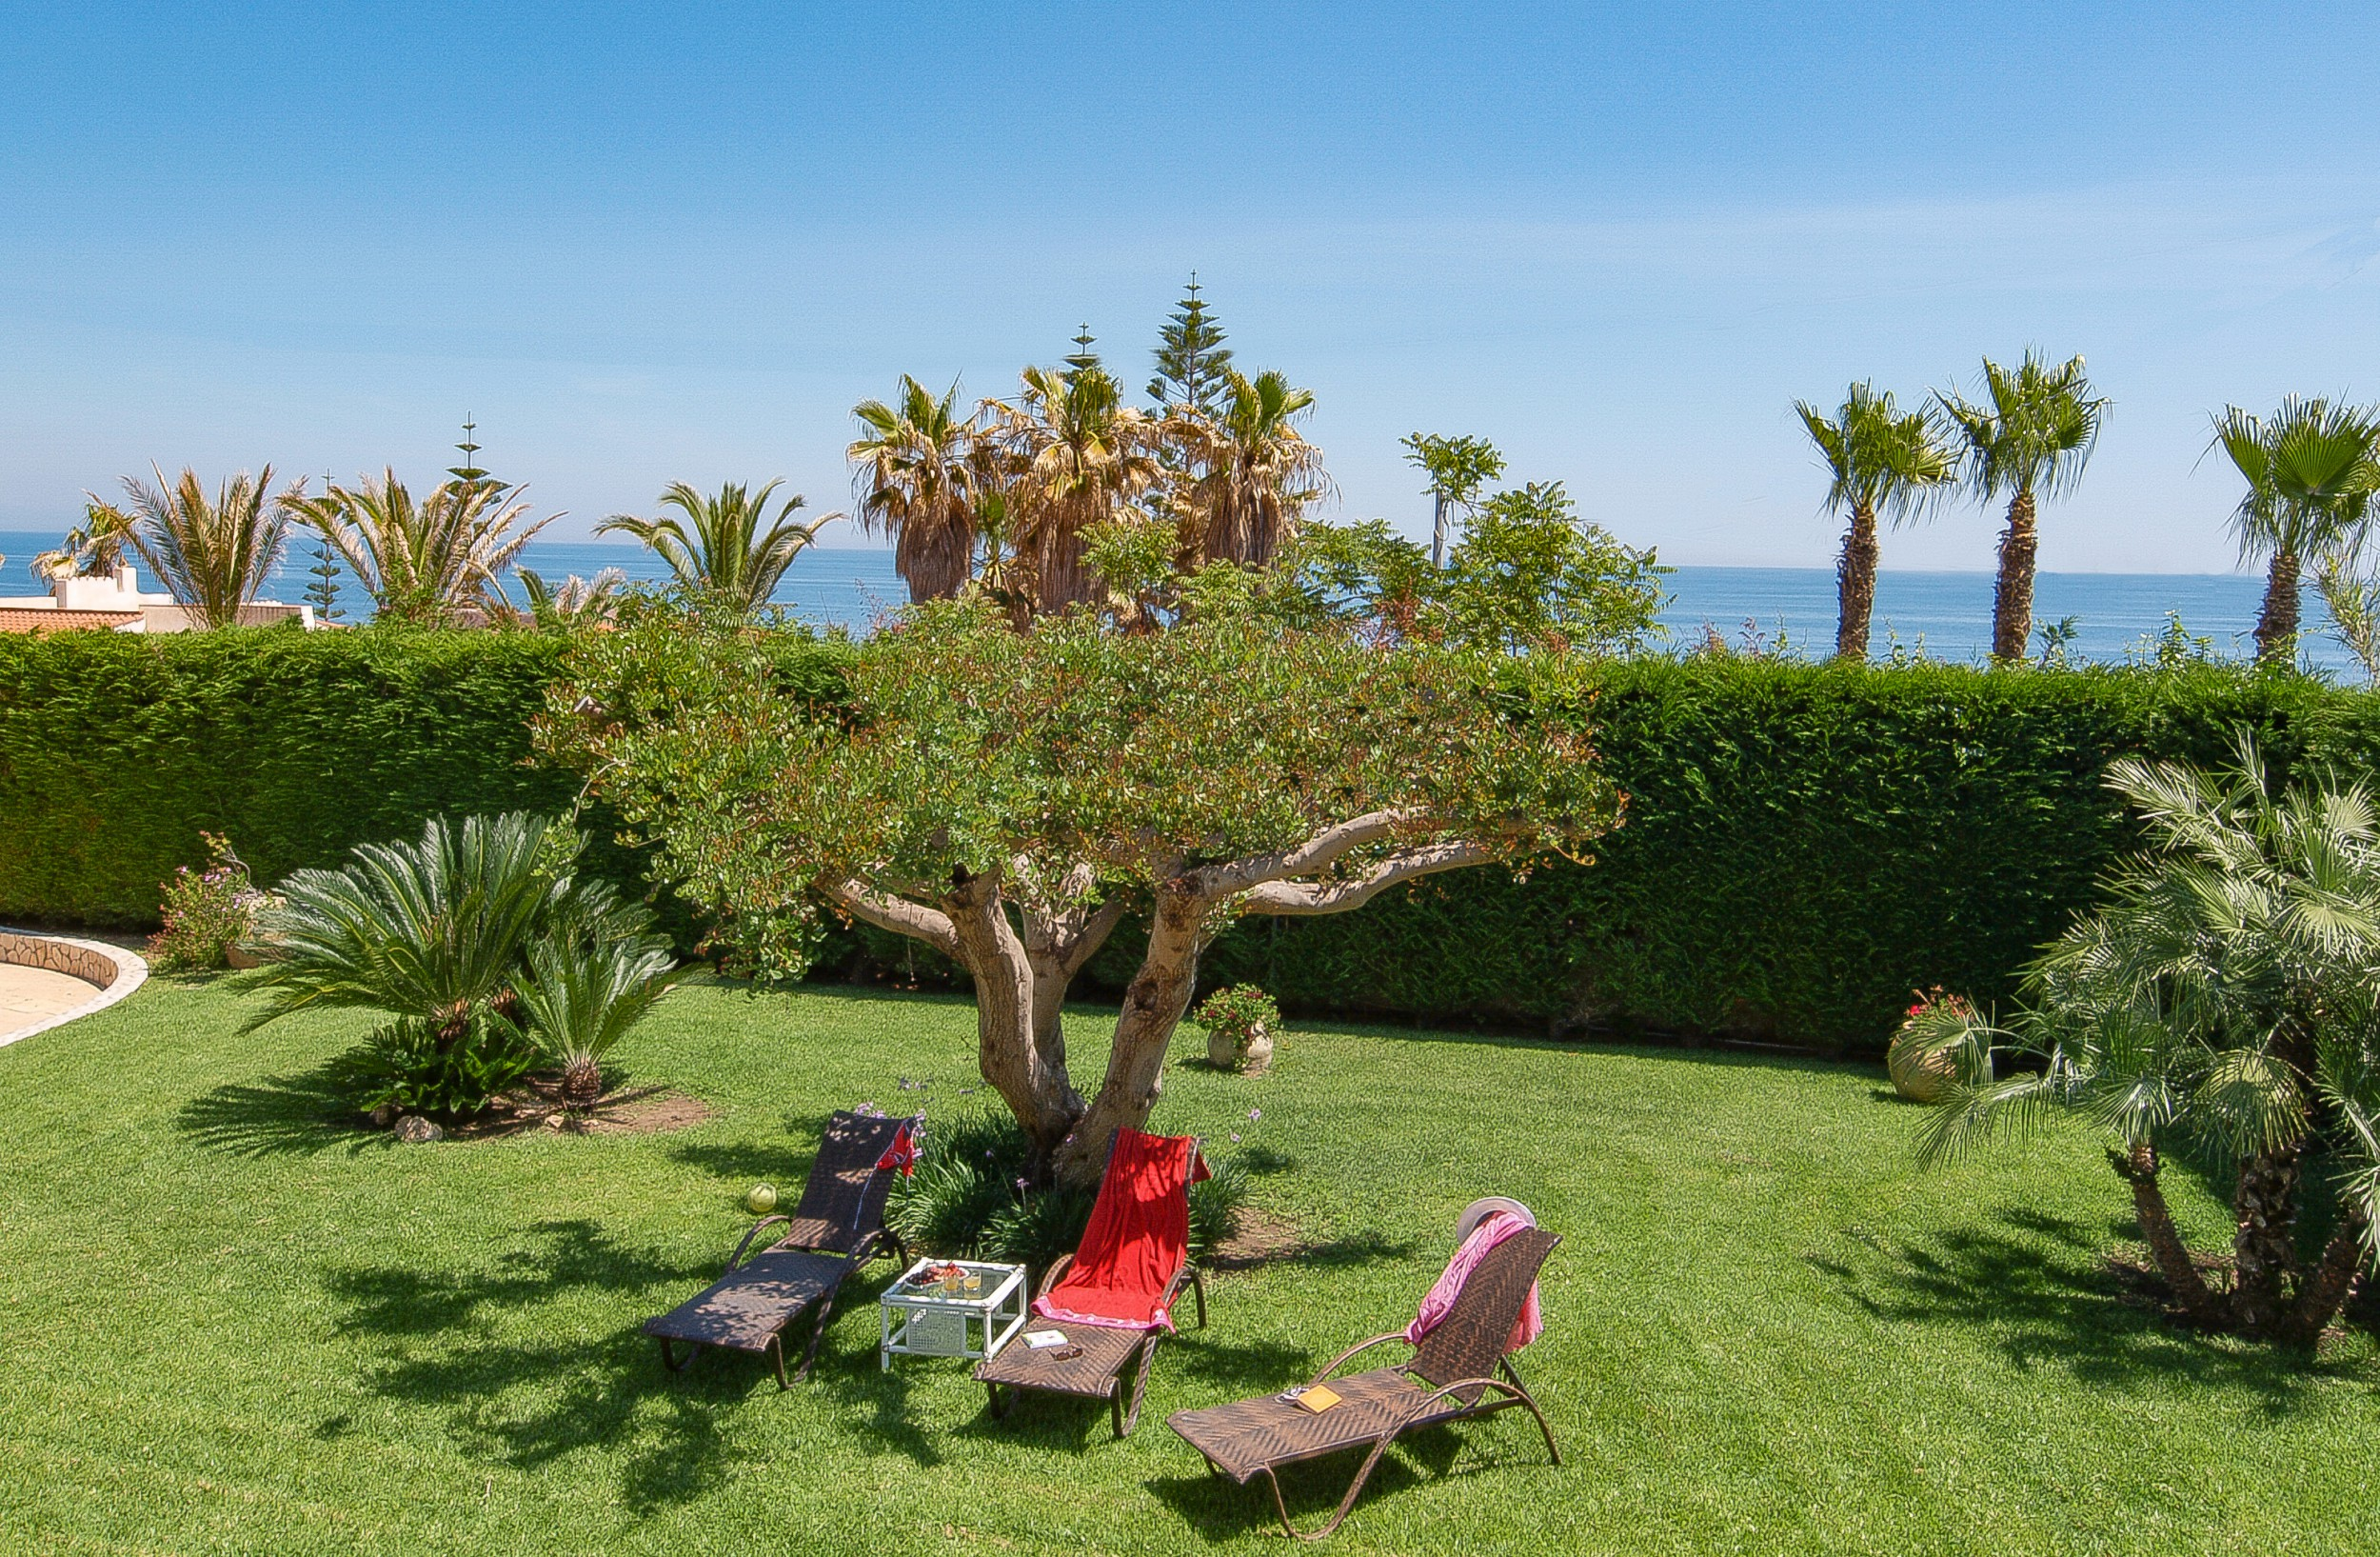 Villa in Sicily - Saracena for your Luxury Holidays in sicily near ...